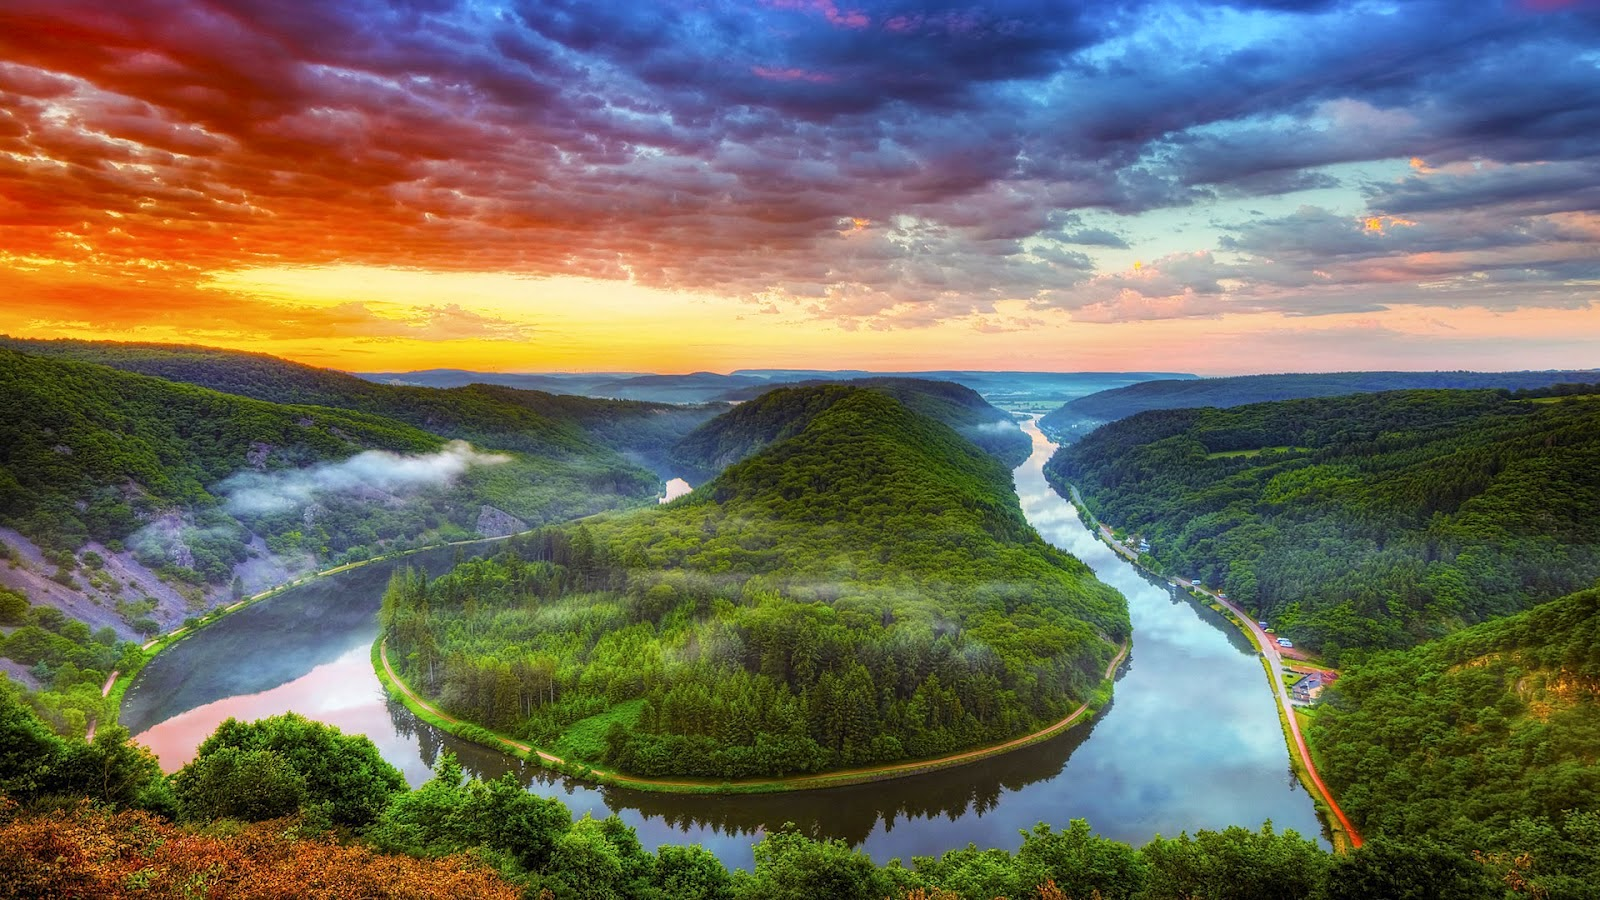 saar river near saarlouis full HD nature background wallpaper for laptop widescreen